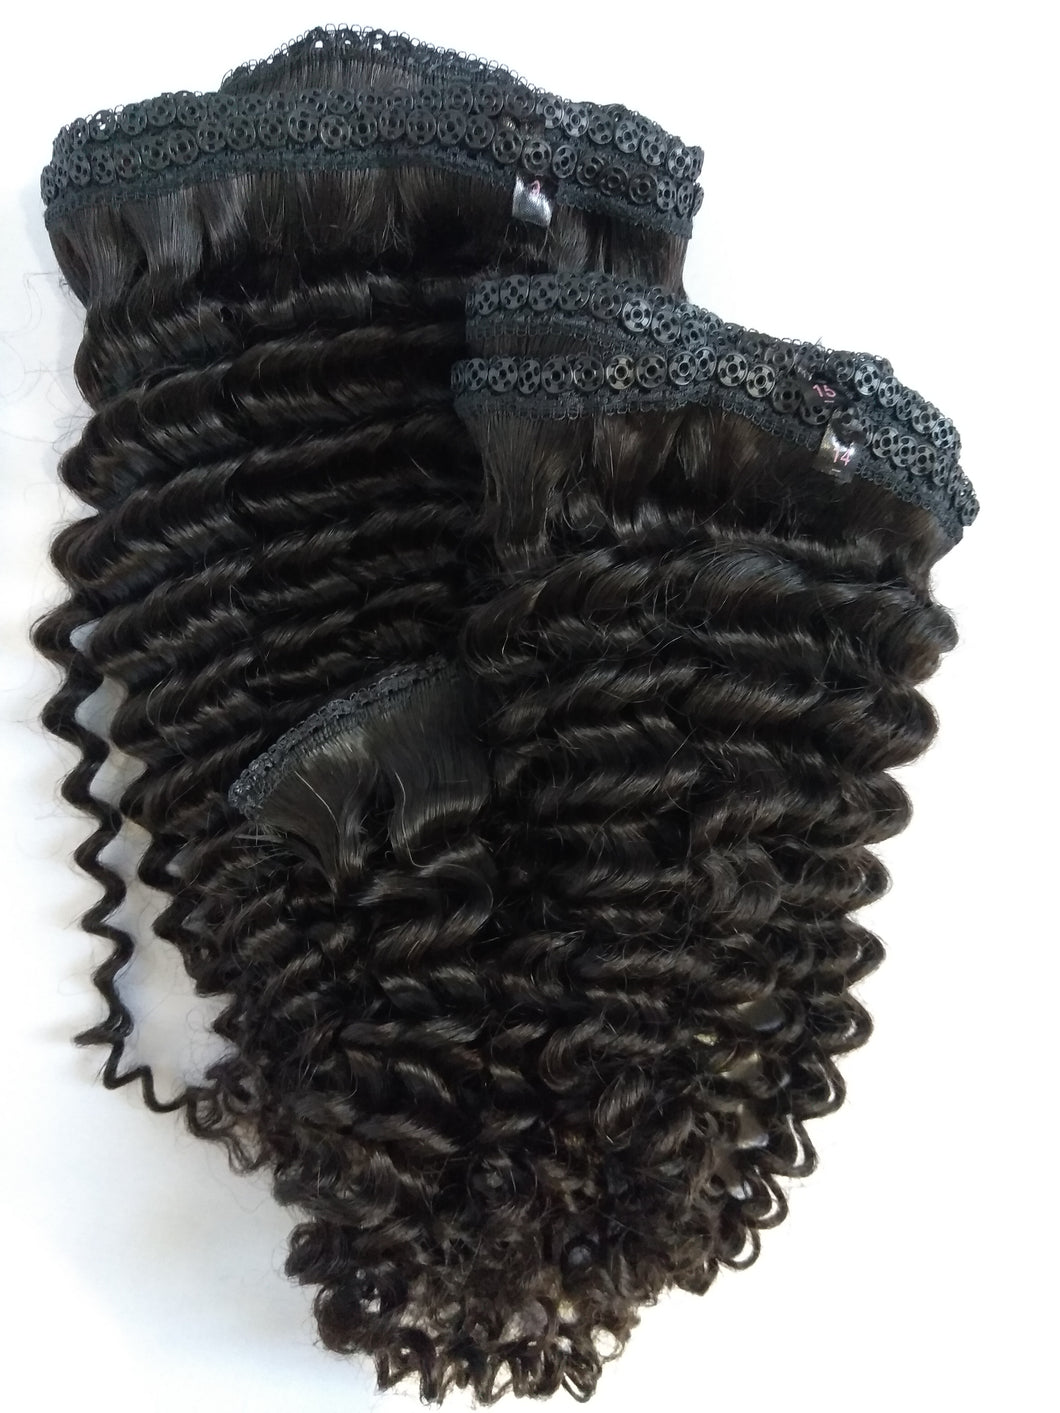 2-3 Bundles Virgin Peruvian Curly Cap Not Included-10% DISCOUNT CODE V9SQ-0208-TKM6